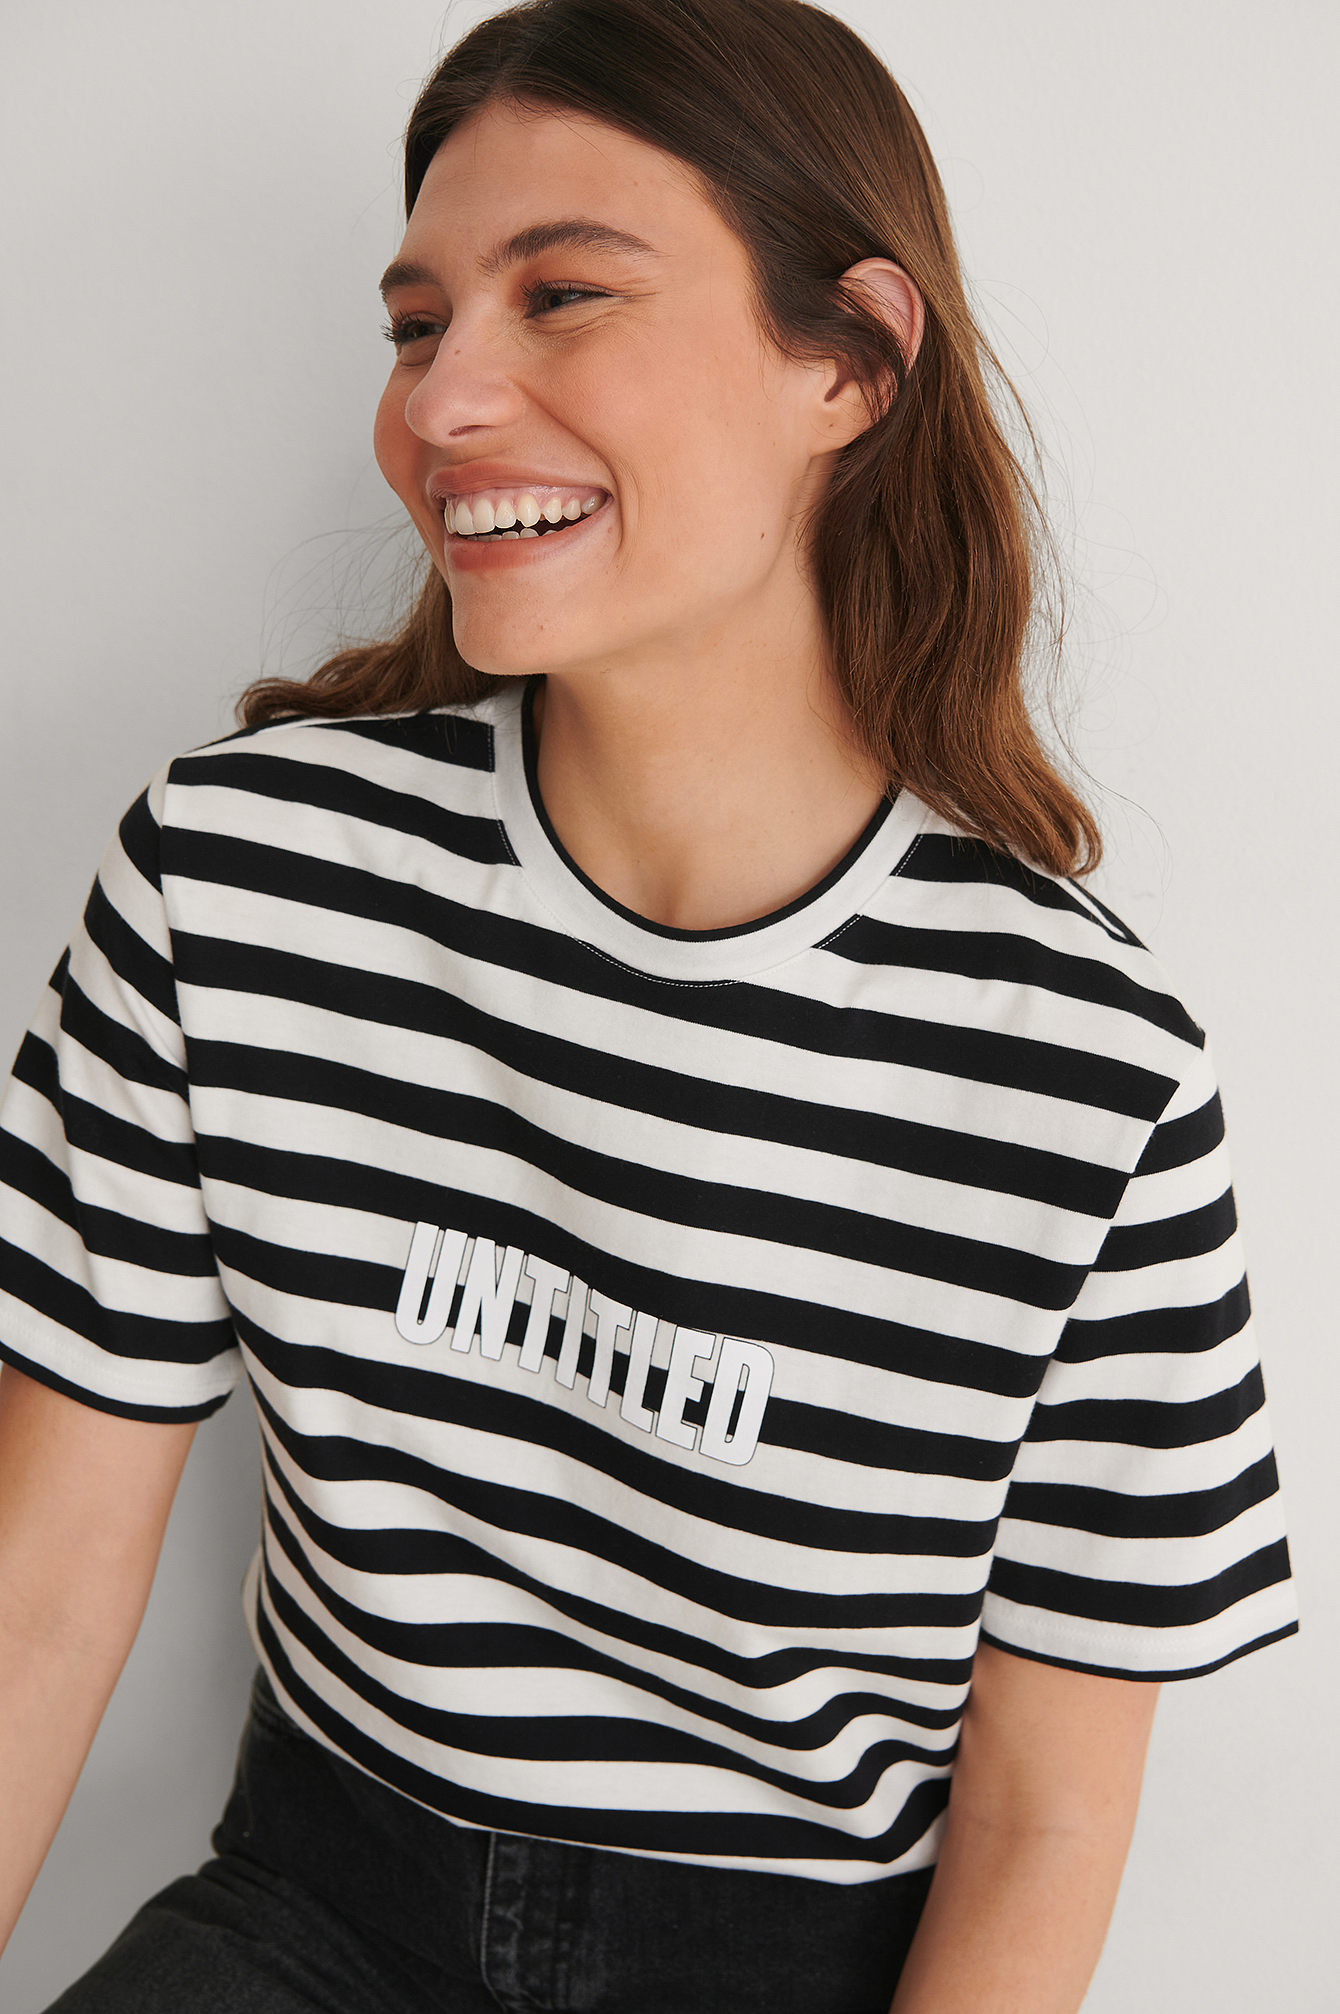 Striped Striped Oversized Tee